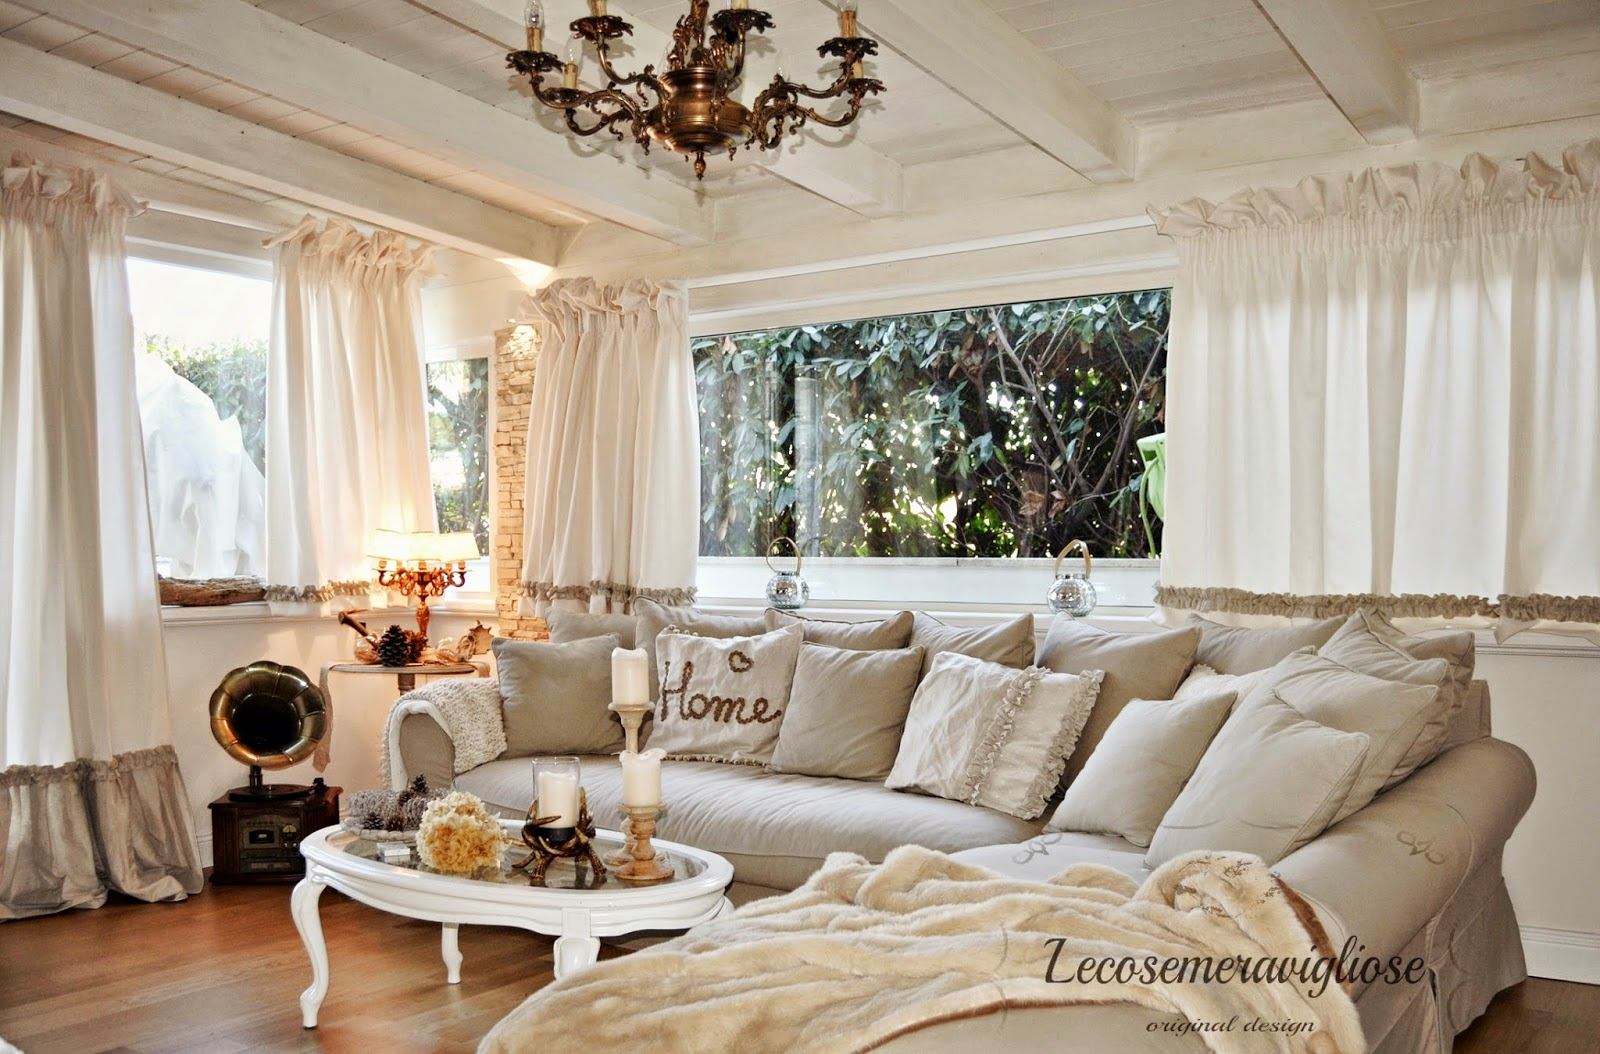 Lecosemeravigliose shabby e country chic passions tende for Casa country chic